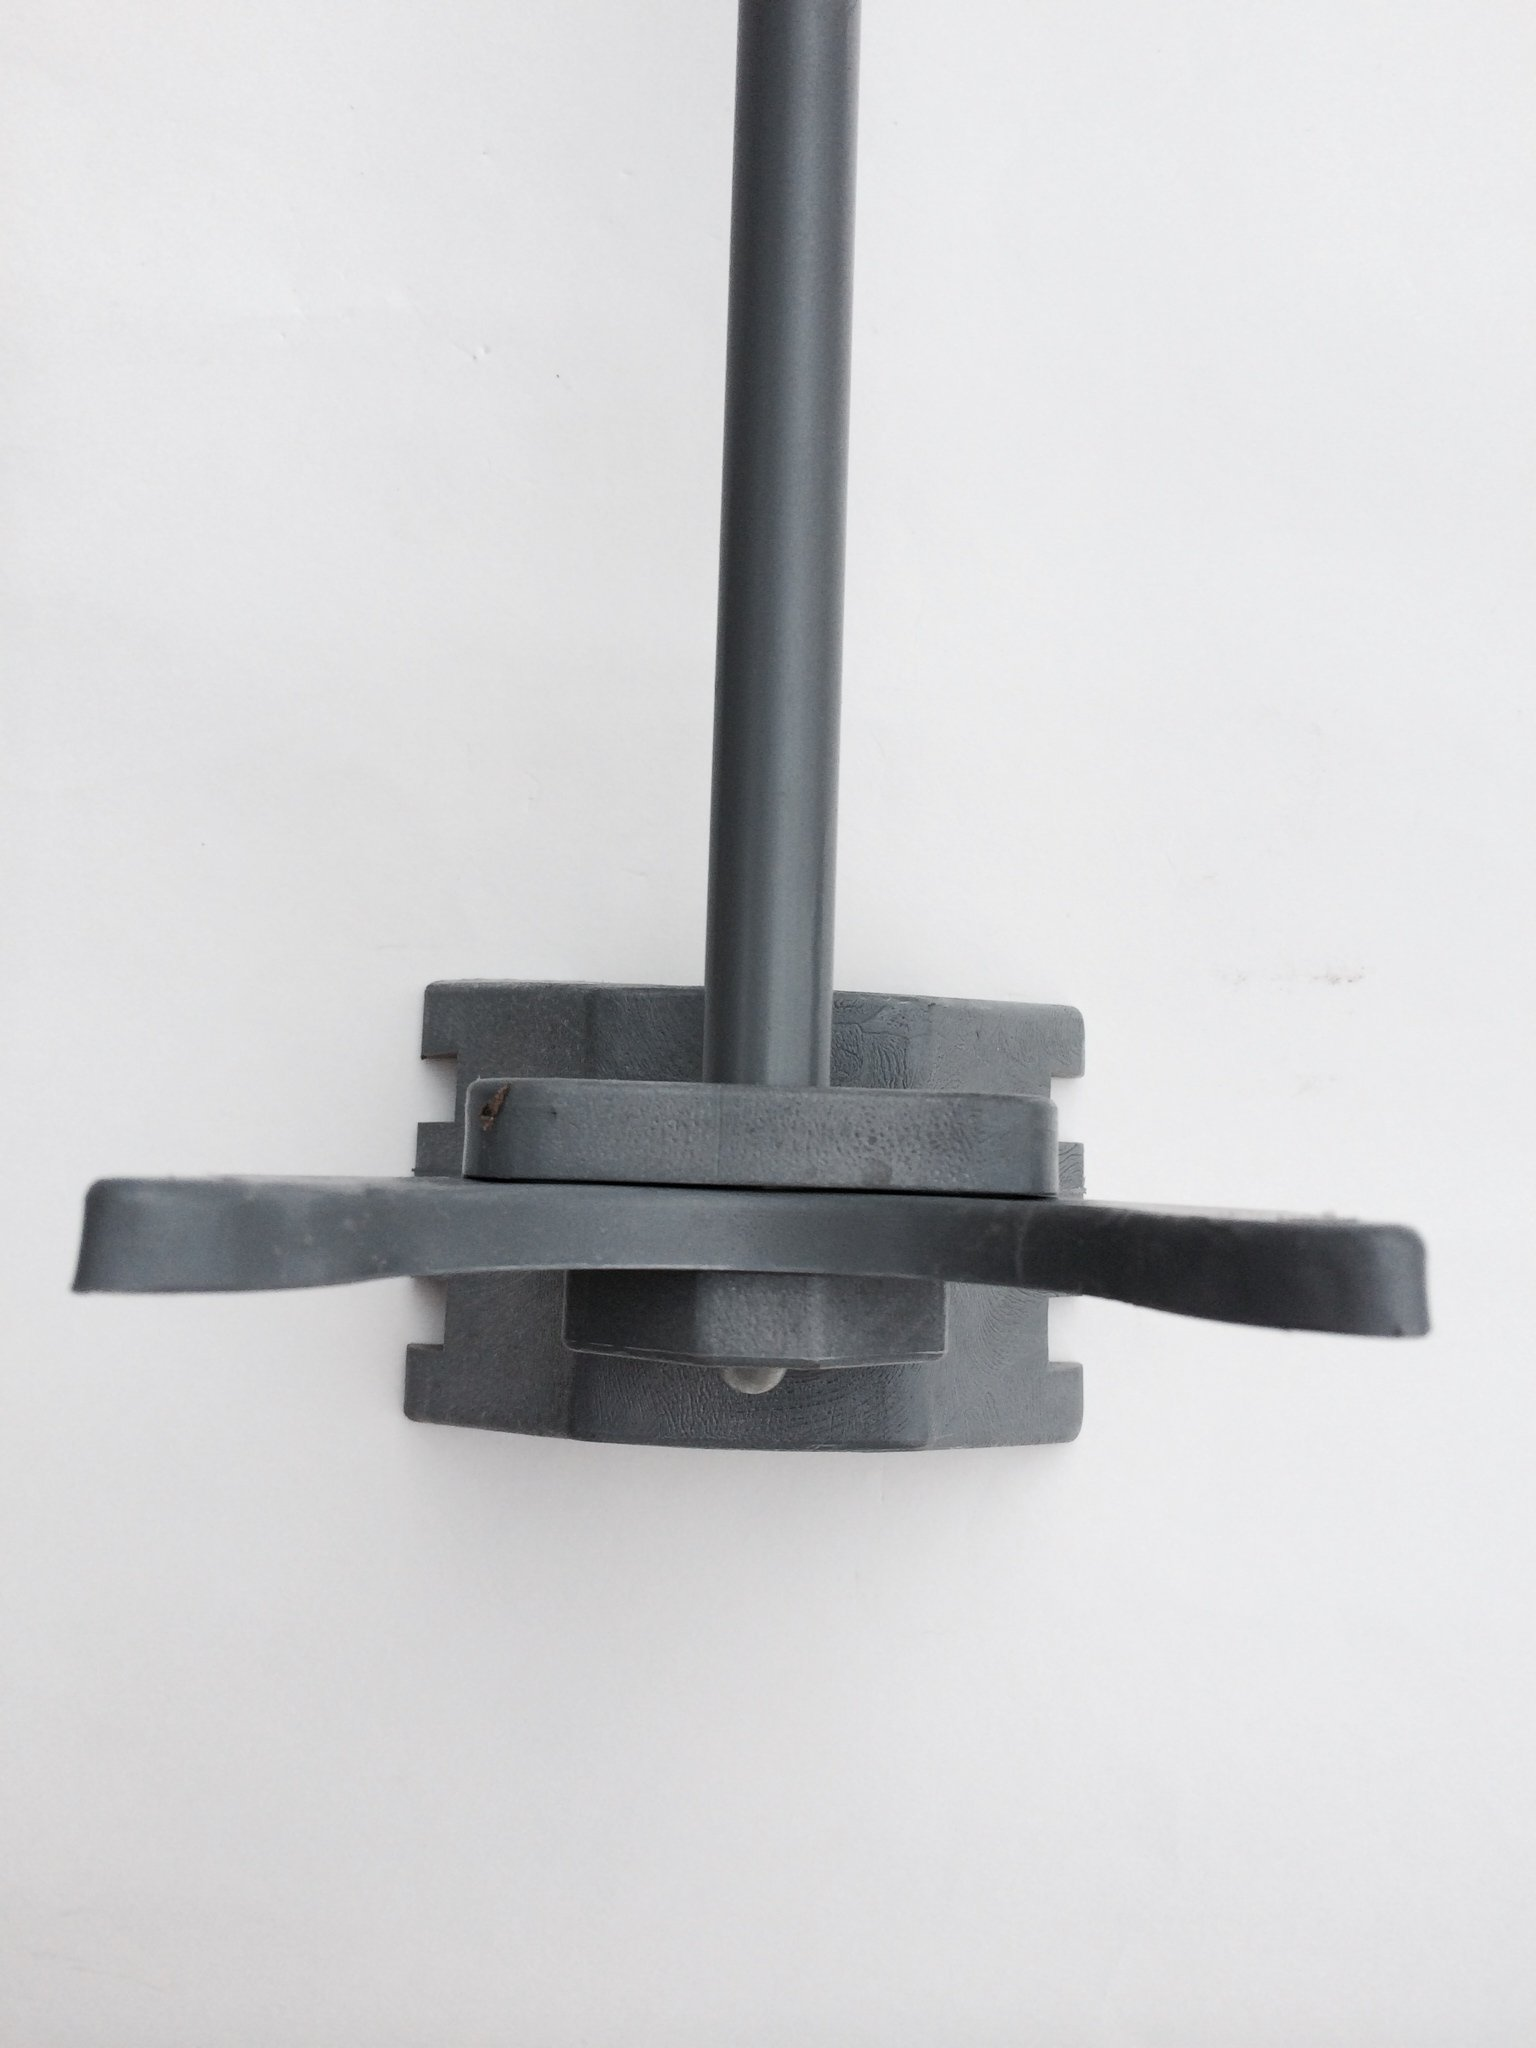 Auto Pool Latch 3'' X 2'' for Pool Chain Link Fence Gate by Fence America of NJ (Image #2)